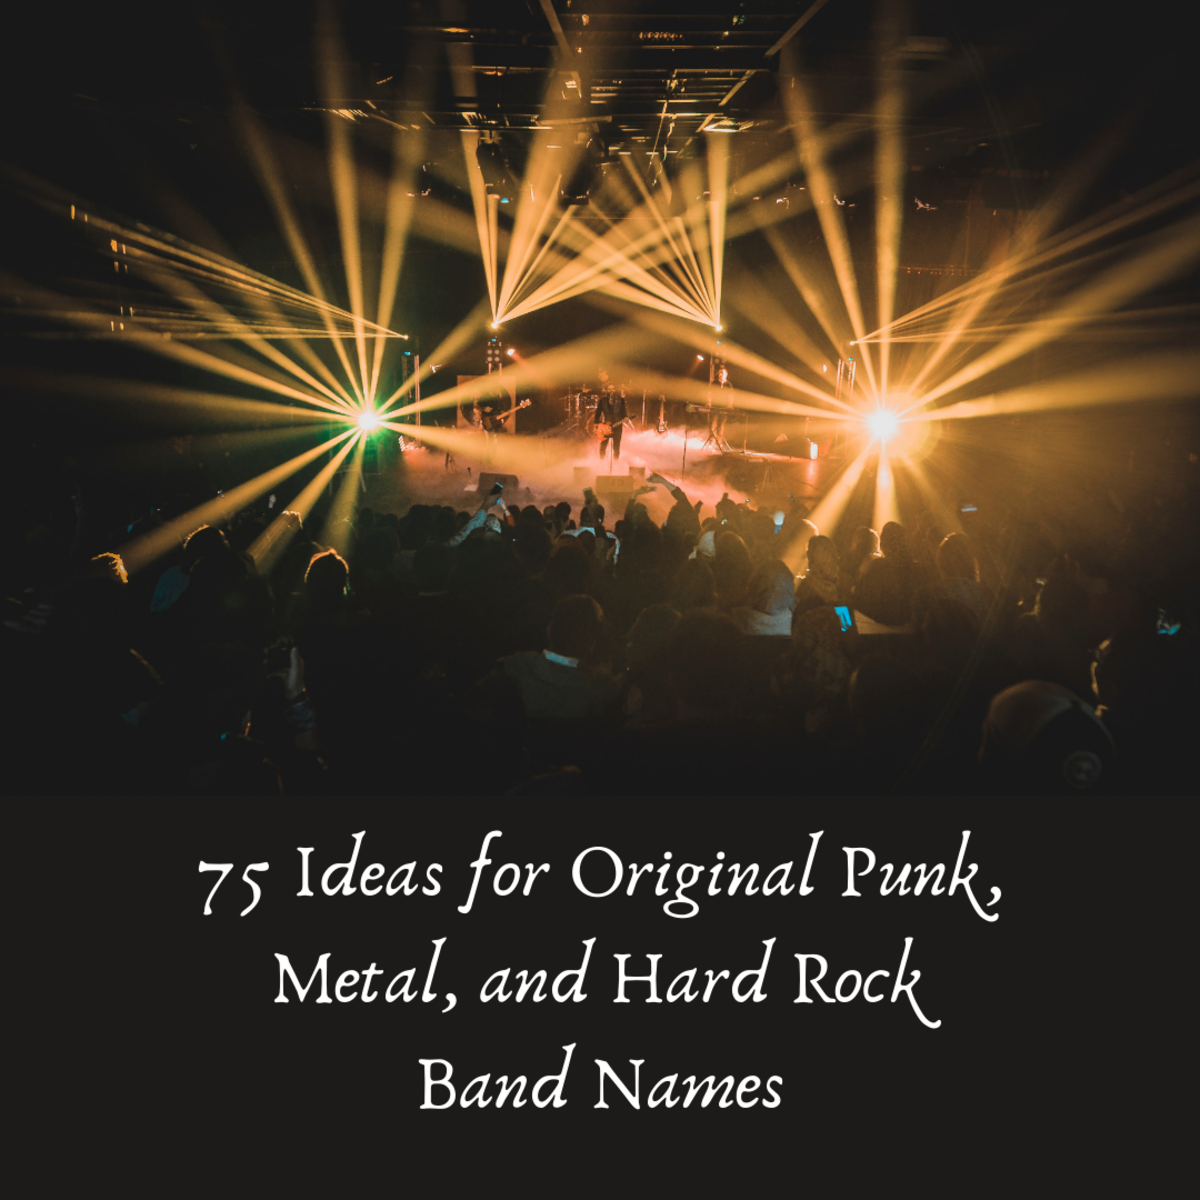 75 Ideas for Original Punk, Metal, and Hard Rock Band Names